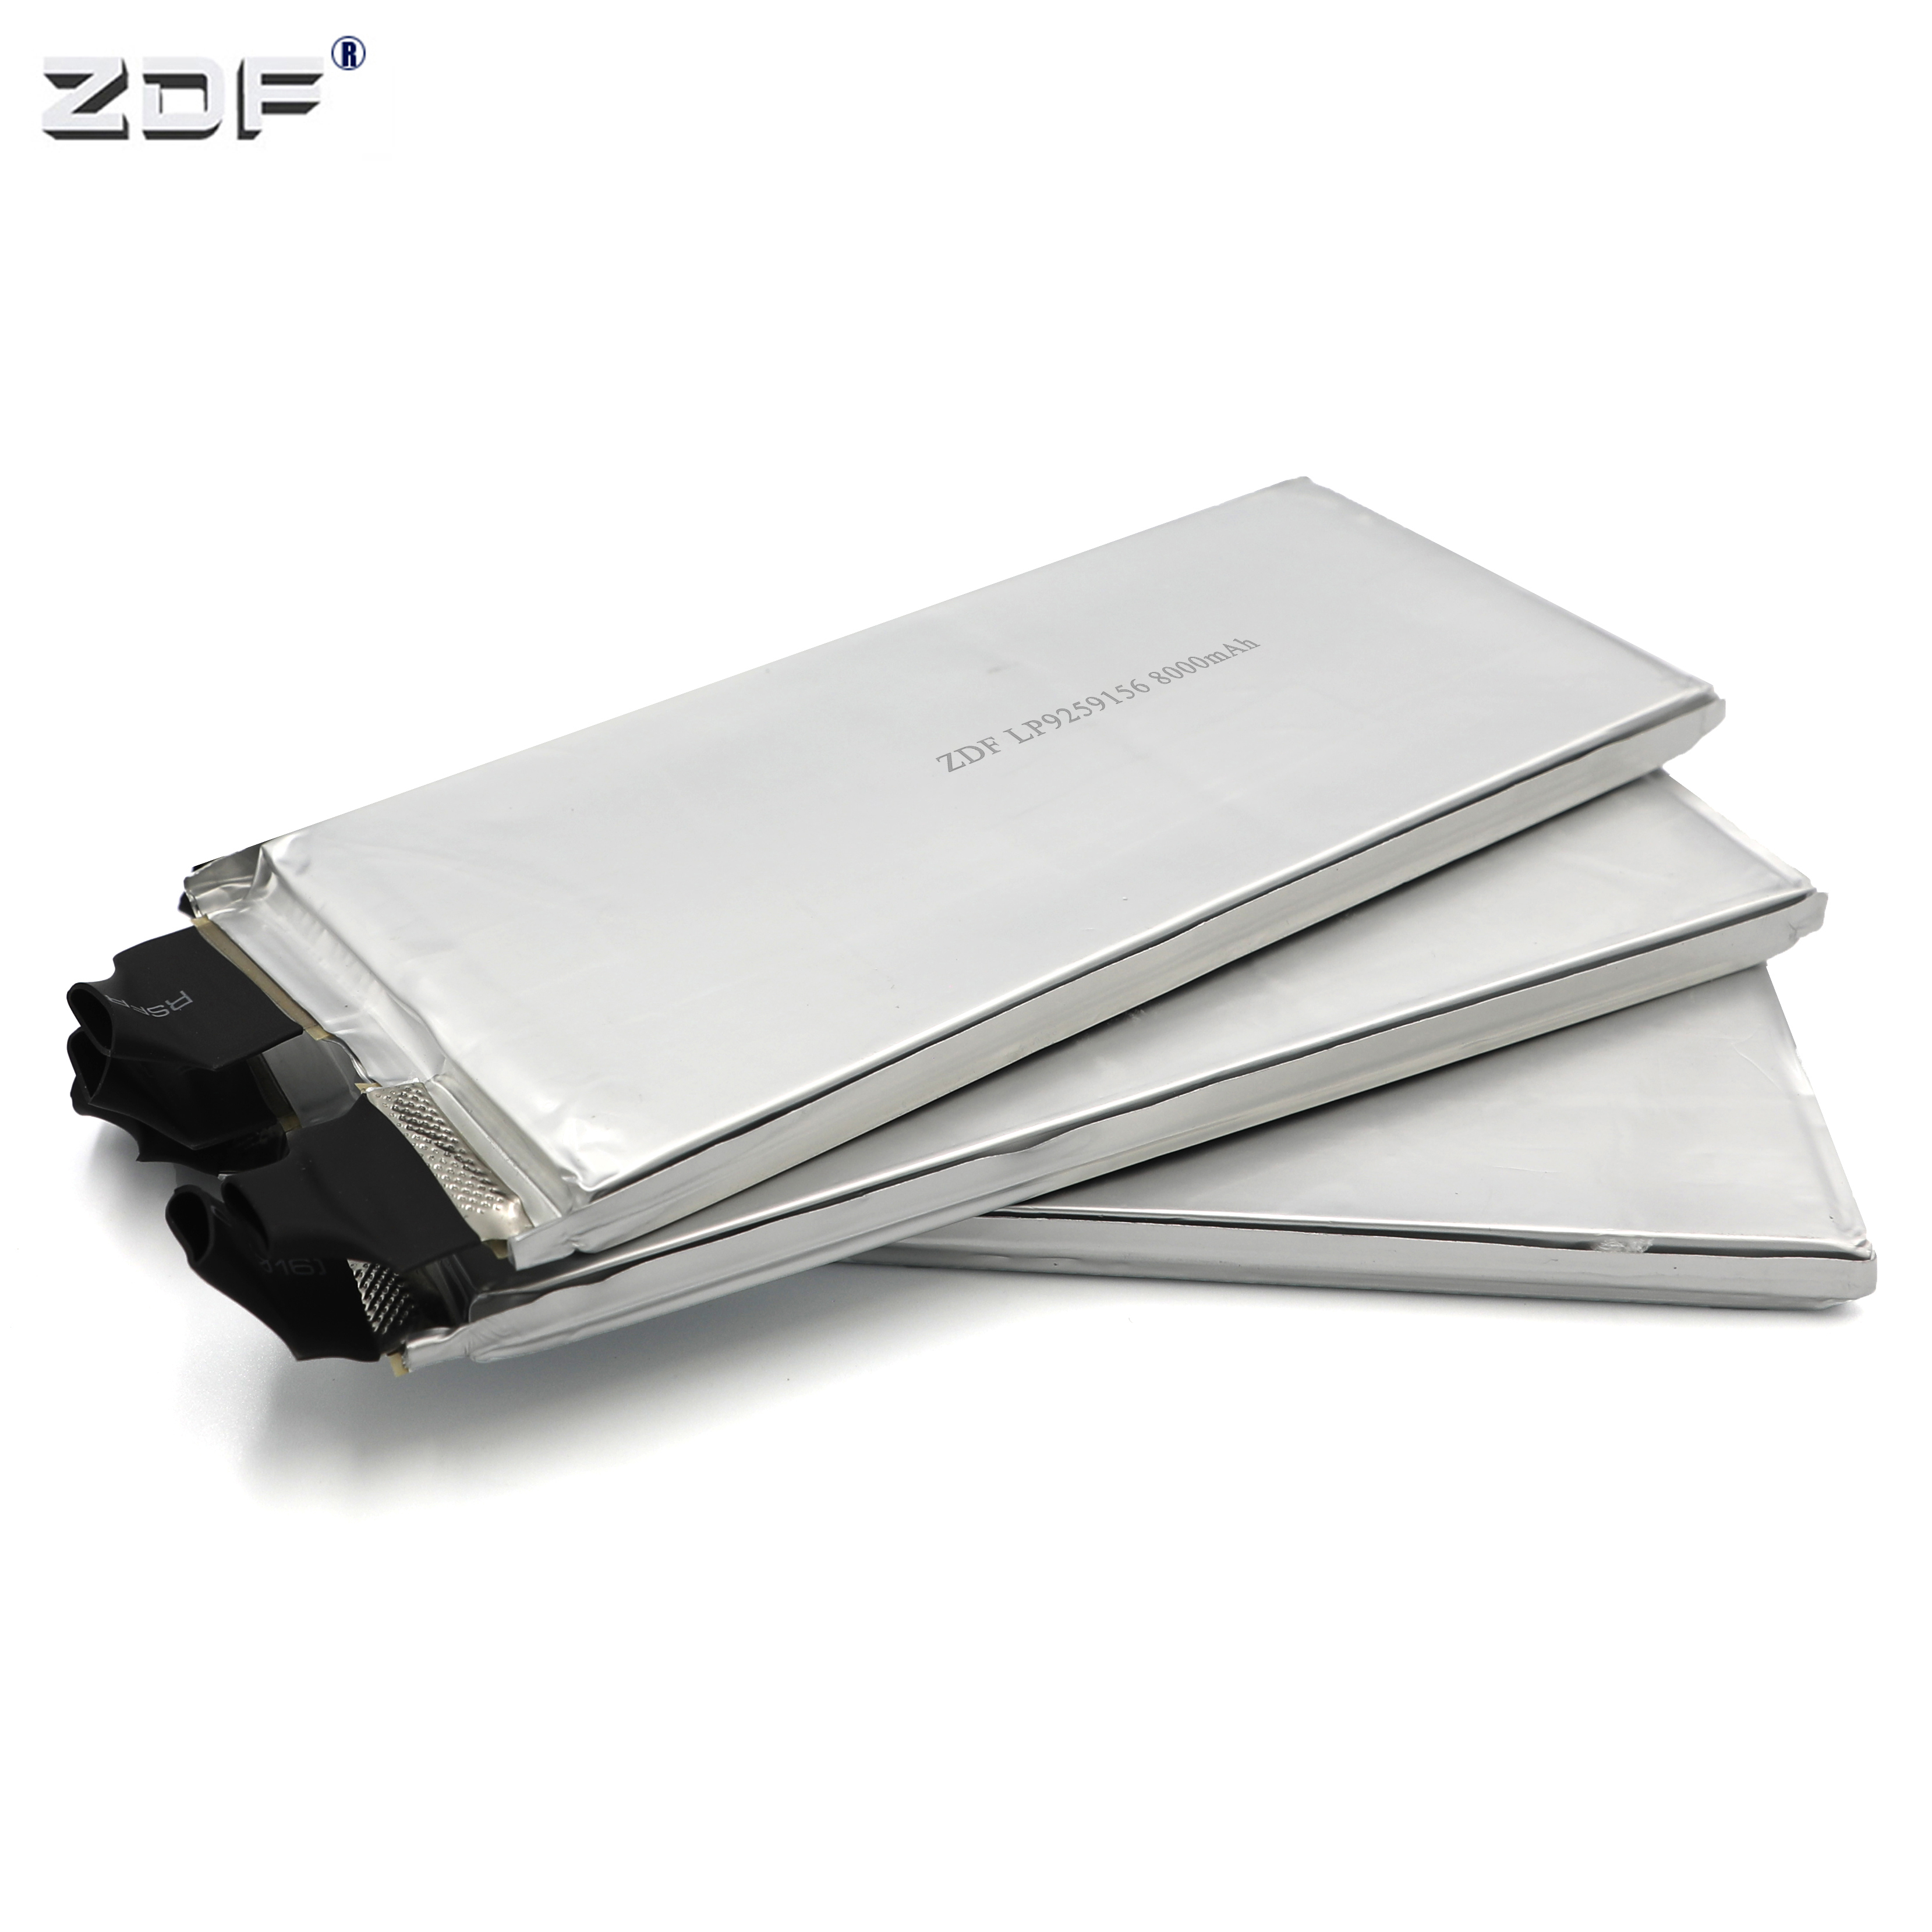 ZDF 3.7V 5000mAh 6000mAh <font><b>8000mah</b></font> 10000mAh 12000mAh 16000mAh 25C 35C 50C <font><b>lipo</b></font> battery cell for diy RC UAV Drone 2S <font><b>3S</b></font> 4S 5S 6S image